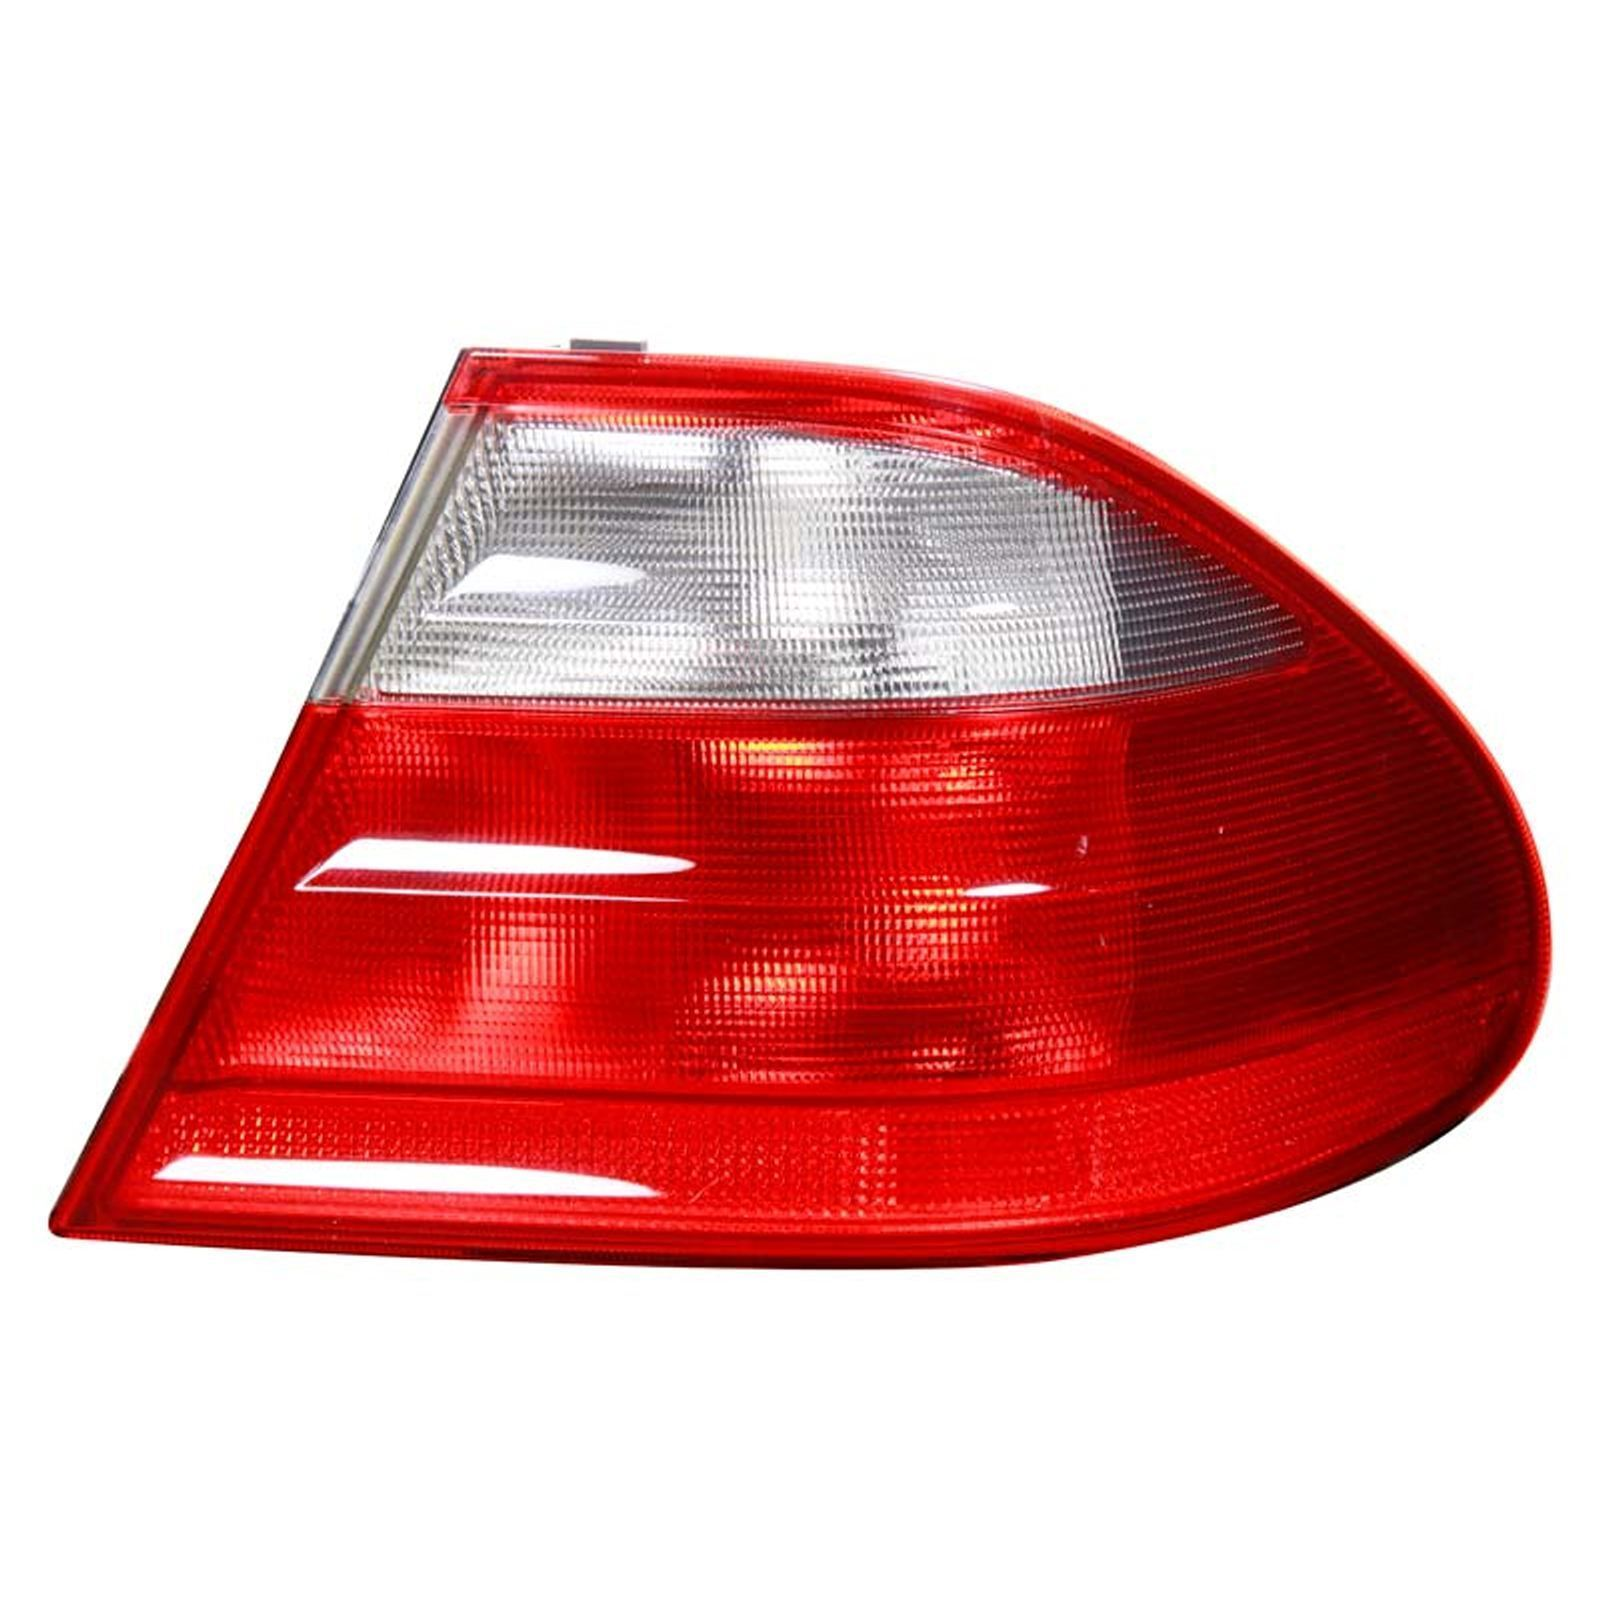 For Nissan Interstar 2002-2003 Rear Tail Light Lamp O//S Drivers Right